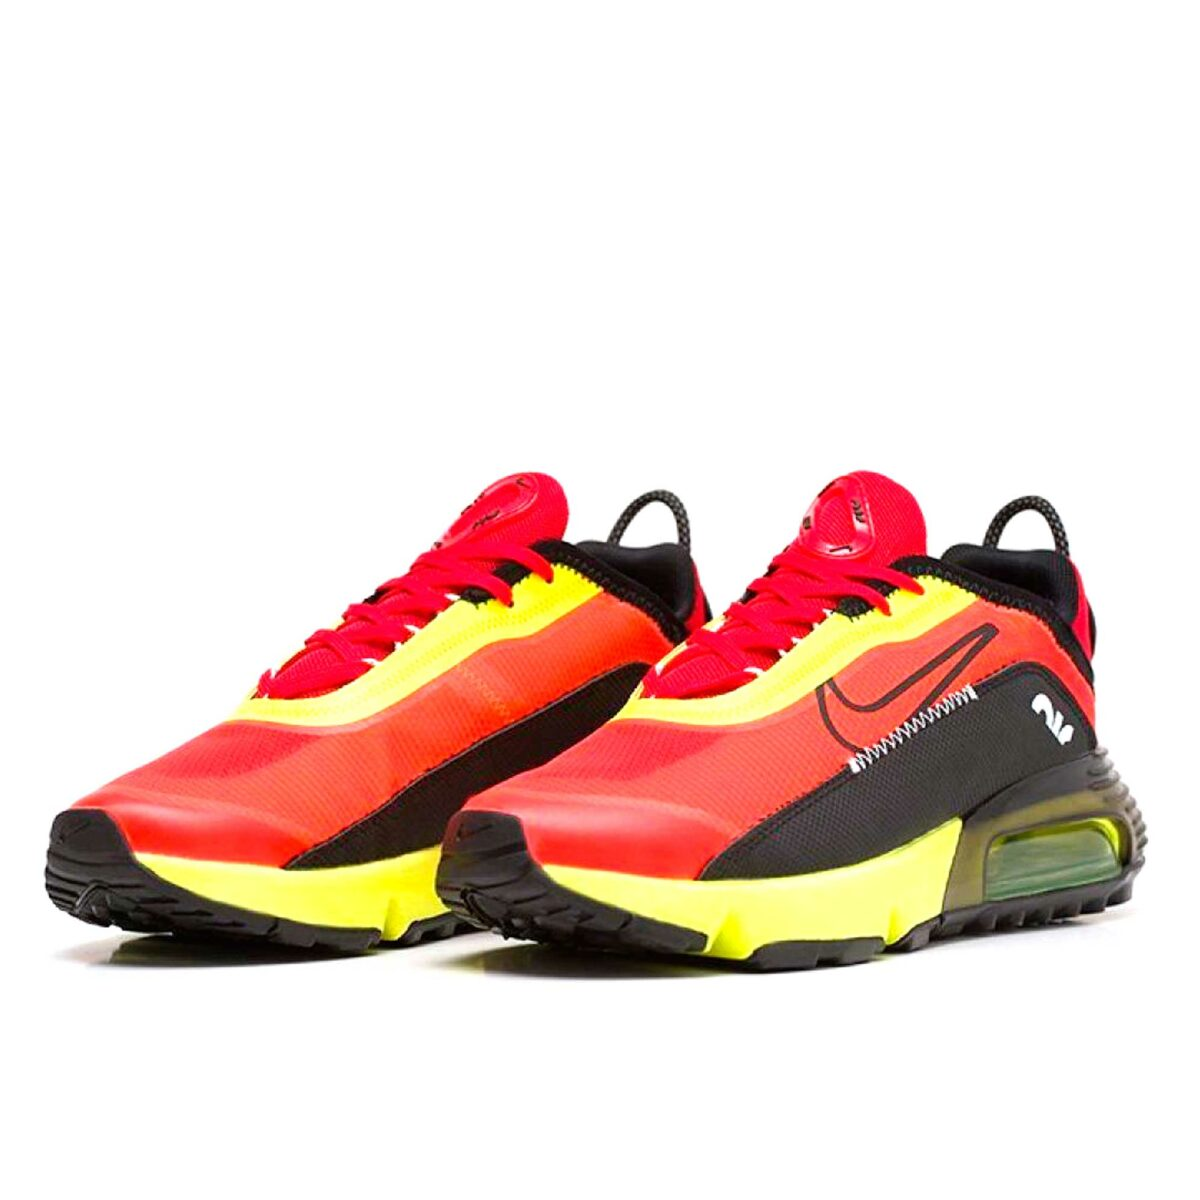 nike air max 2090 red yellow CT7698_006 купить